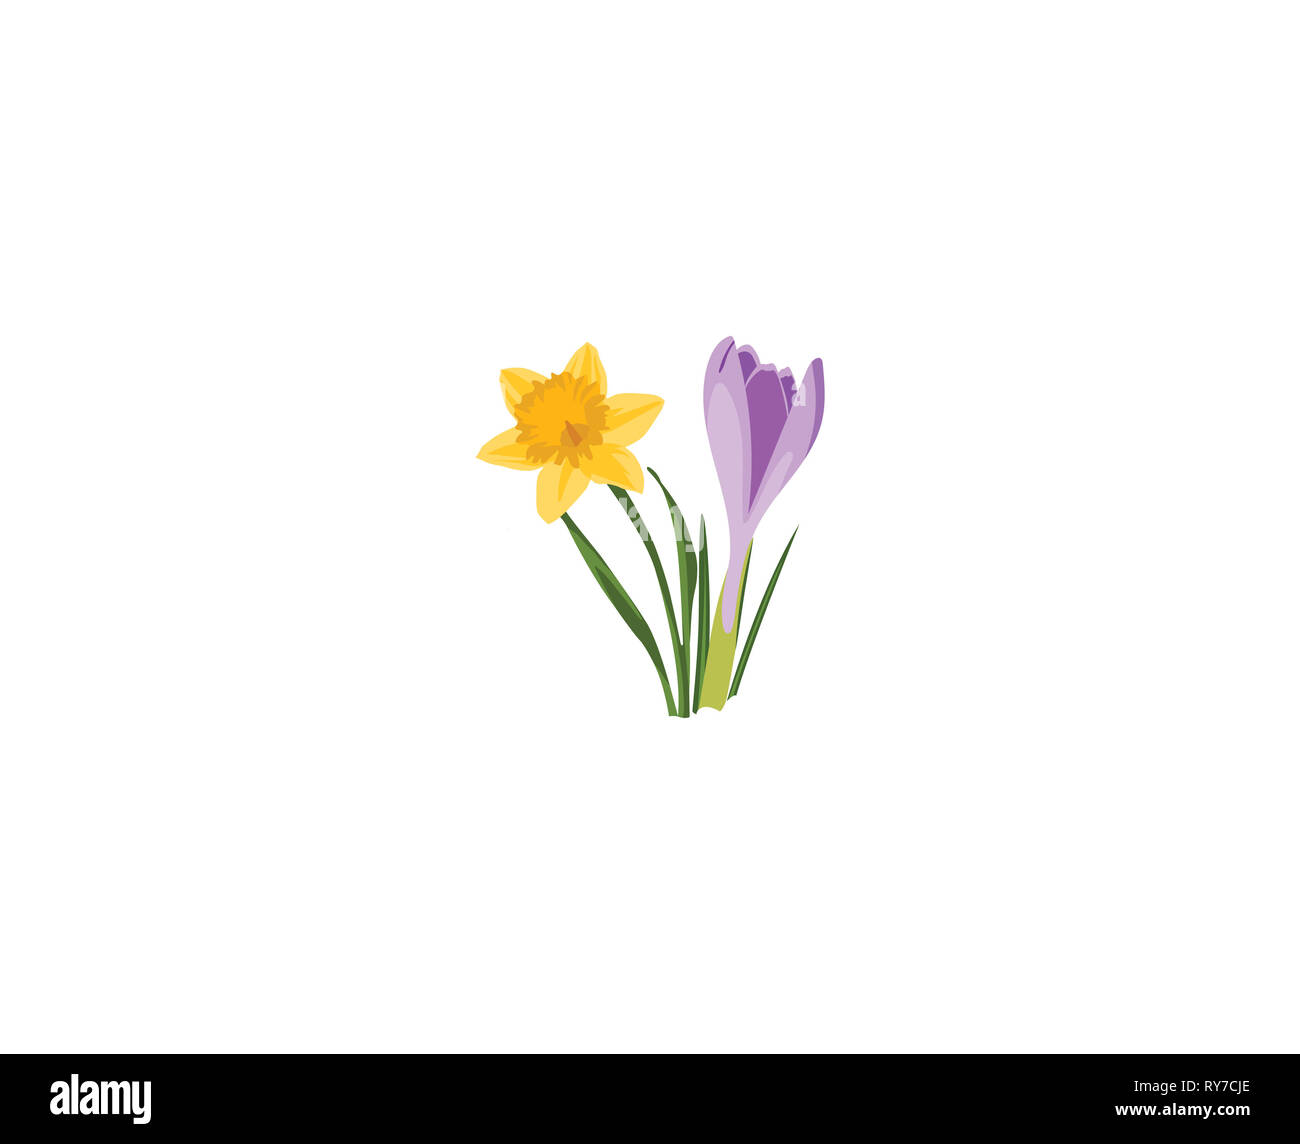 Seamless border with spring flowers. Narcissus and Crocus. Botanical illustration. Colorful. Stock Photo